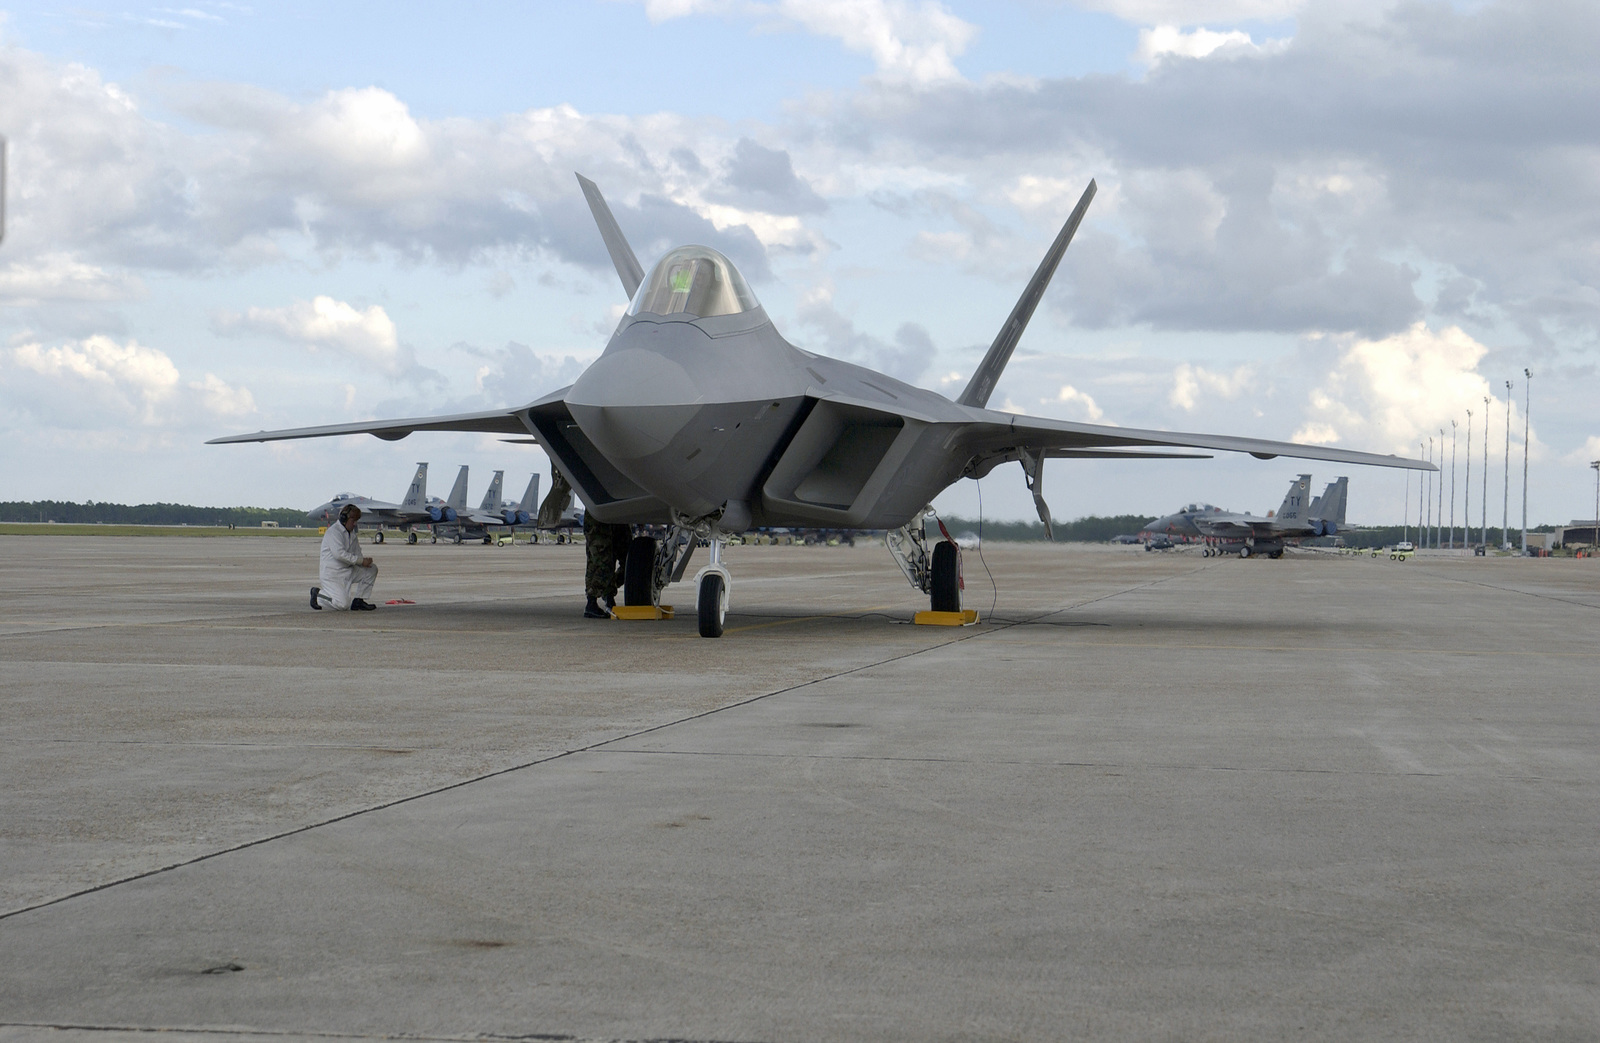 The US Air Force (USAF) F/A-22 Raptor (number 18) sits on the tarmac just after landing. Visible under the wings are the F-15C Eagle fighter jets of the 95th Fighter Squadron (FS). This is the first F/A-22 Raptor delivered to the Air Force. It will become part of the 43rd Fighter Squadron (FS) which will be responsible for training pilots to fly the new air superiority fighter